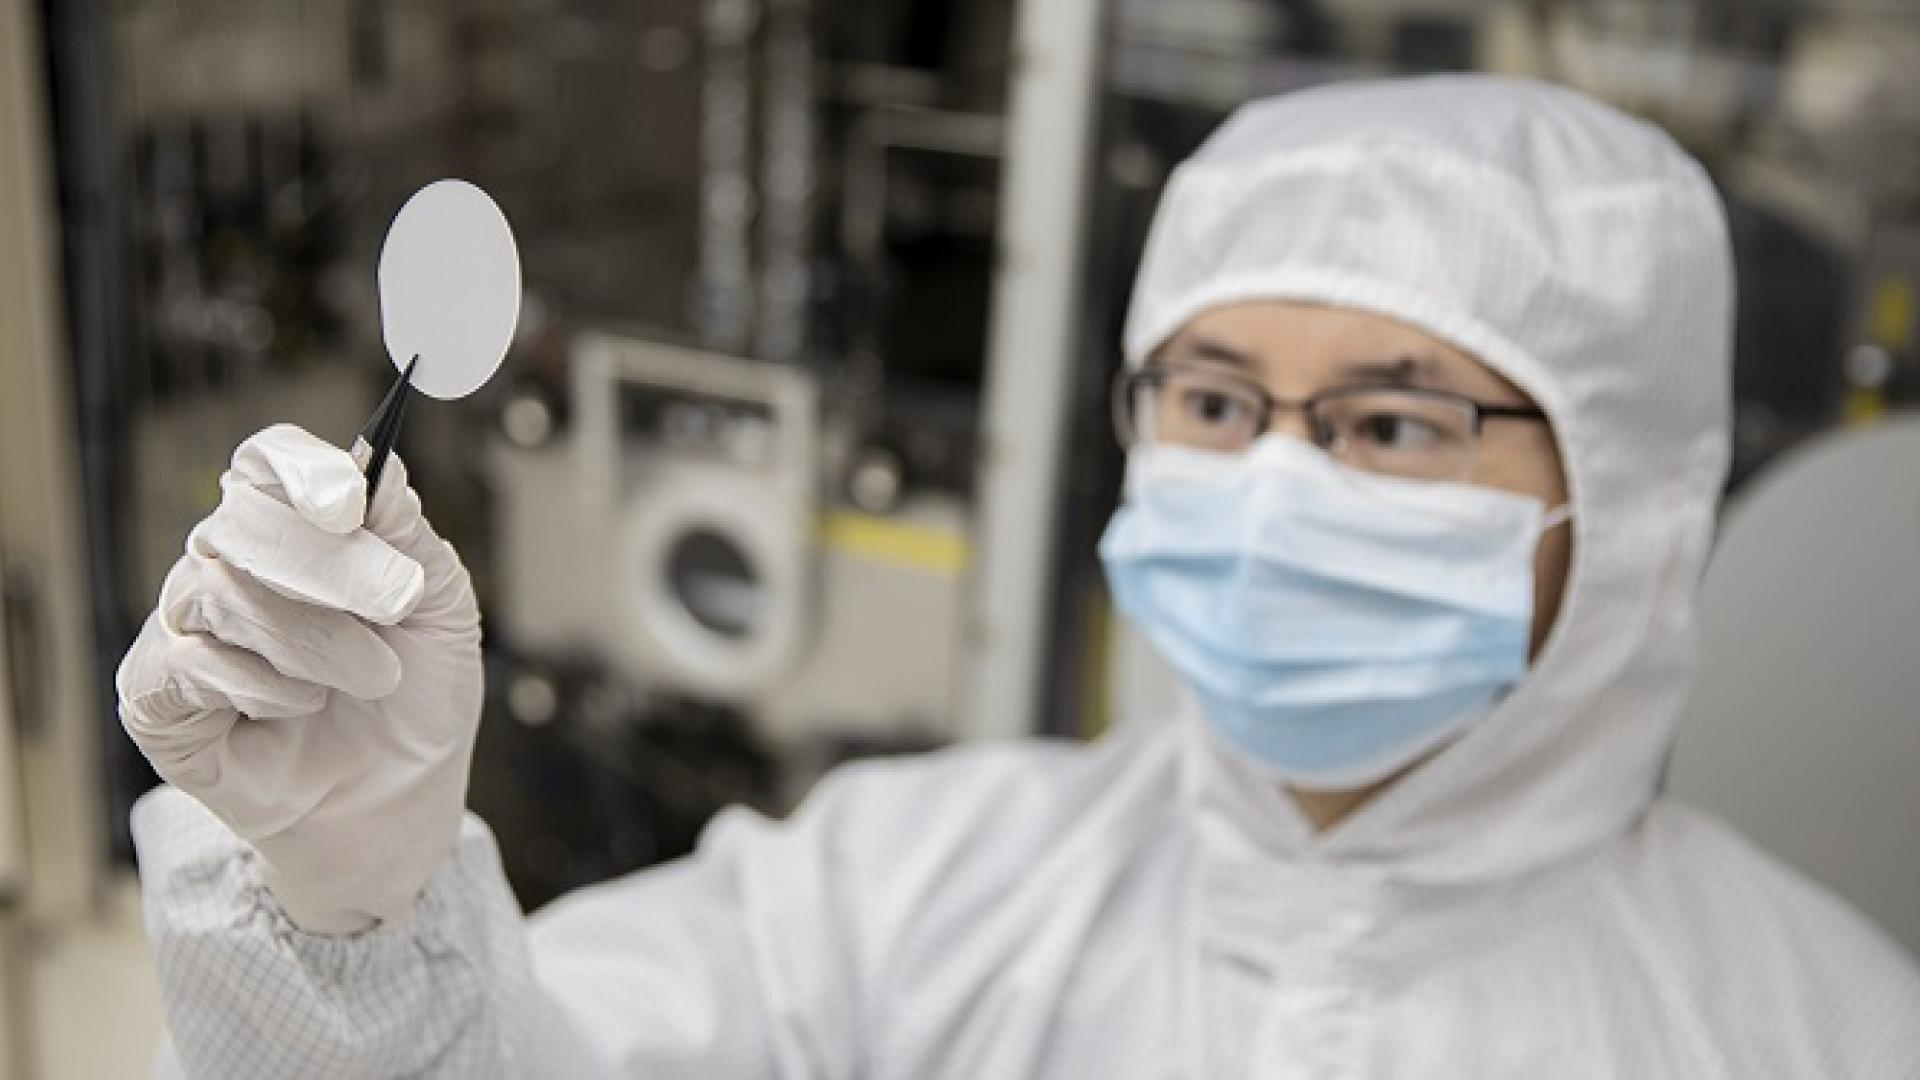 CEMSE EE Haiding Sun Holds Up A Gallium Oxide Template